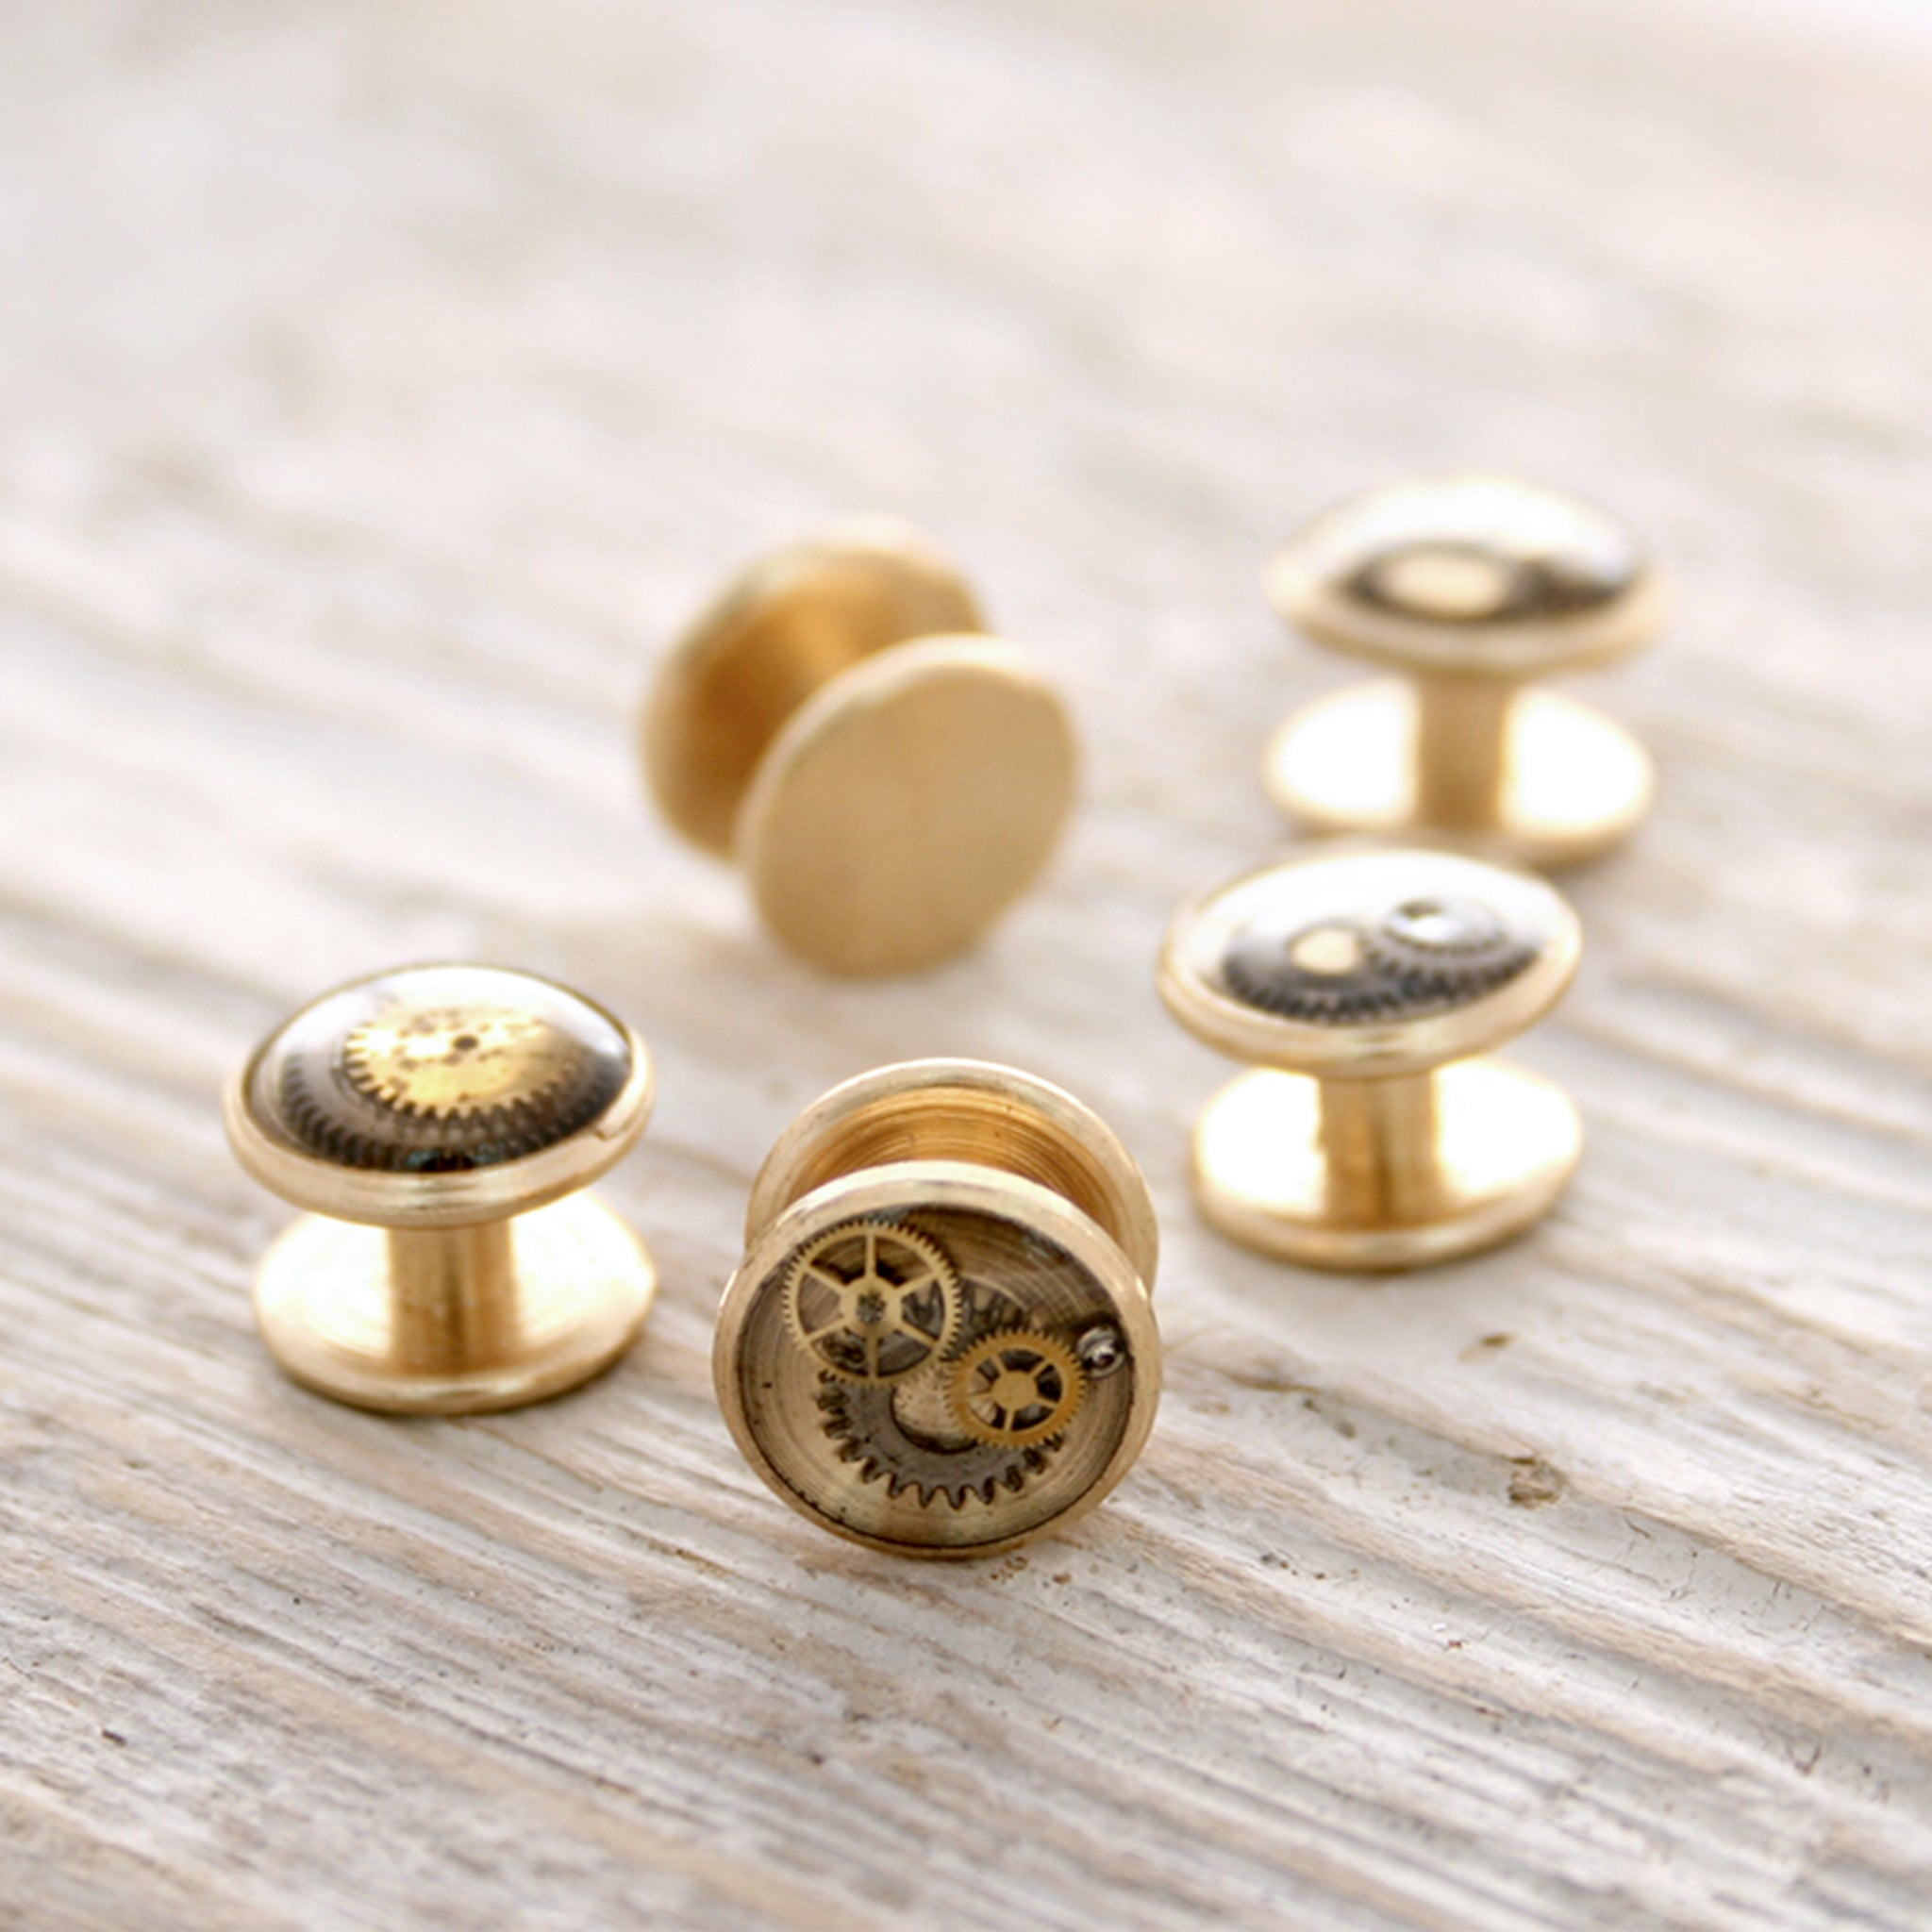 Little tuxedo studs made of raw brass, watch parts and resin